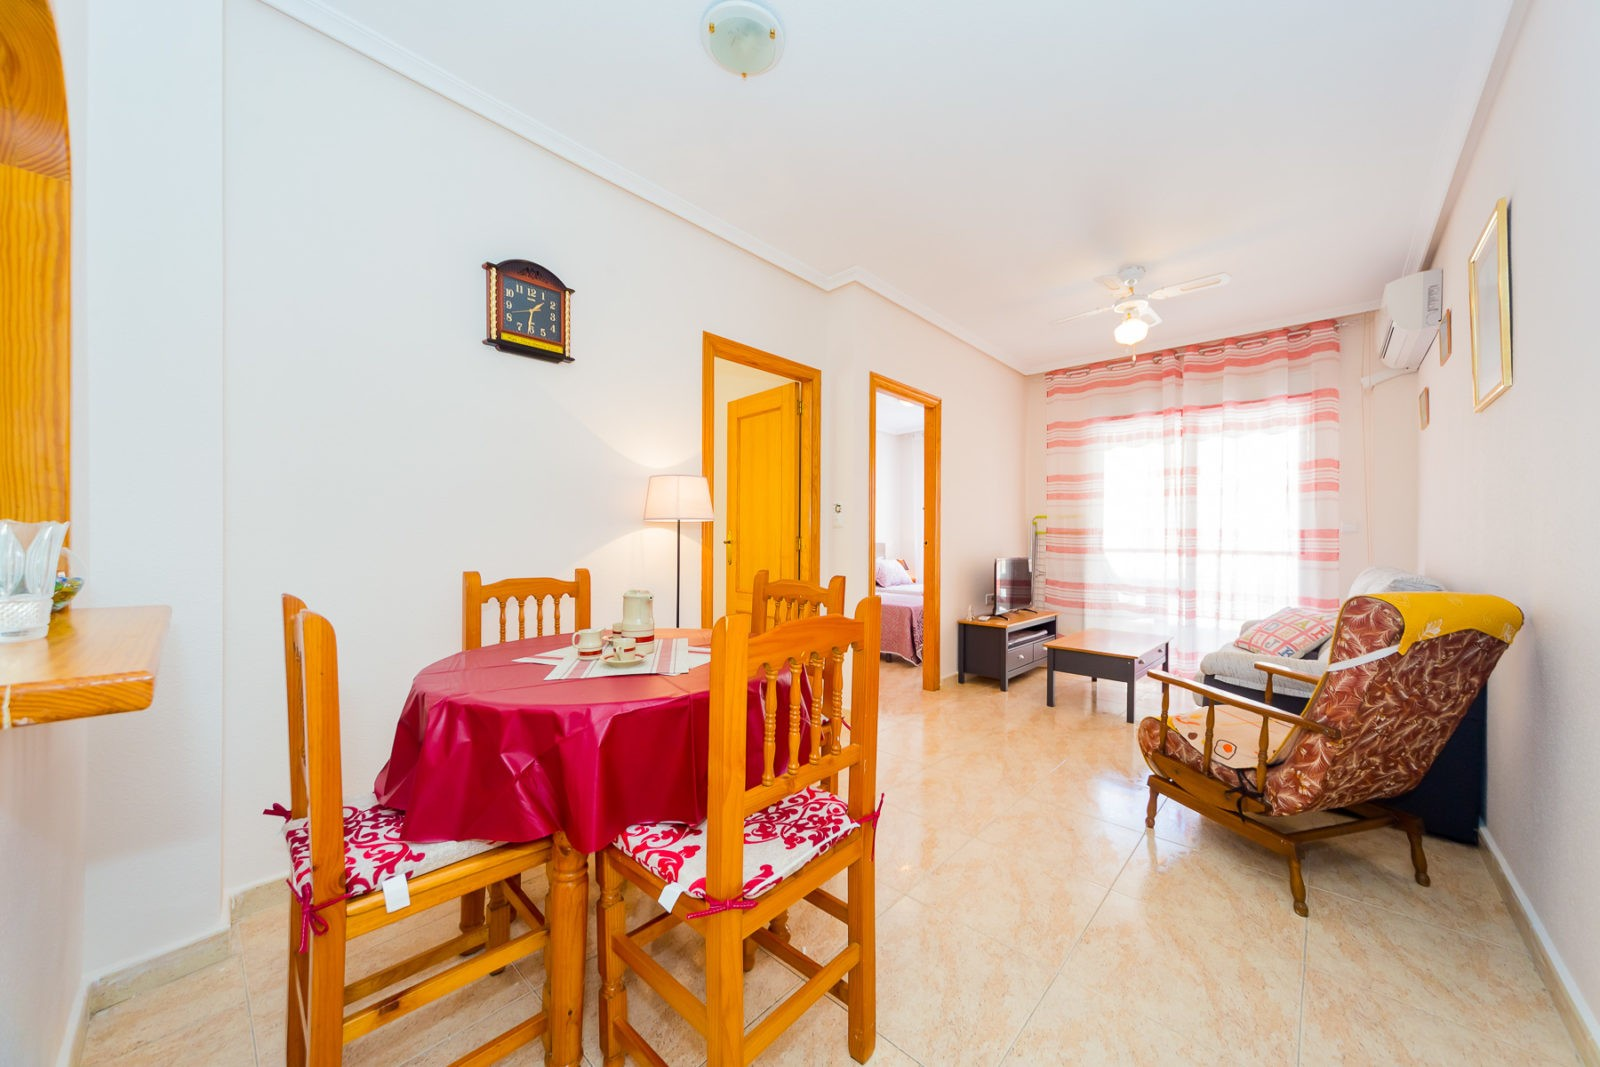 Apartments in Torrevieja ALQ-138   Property for sale in ...